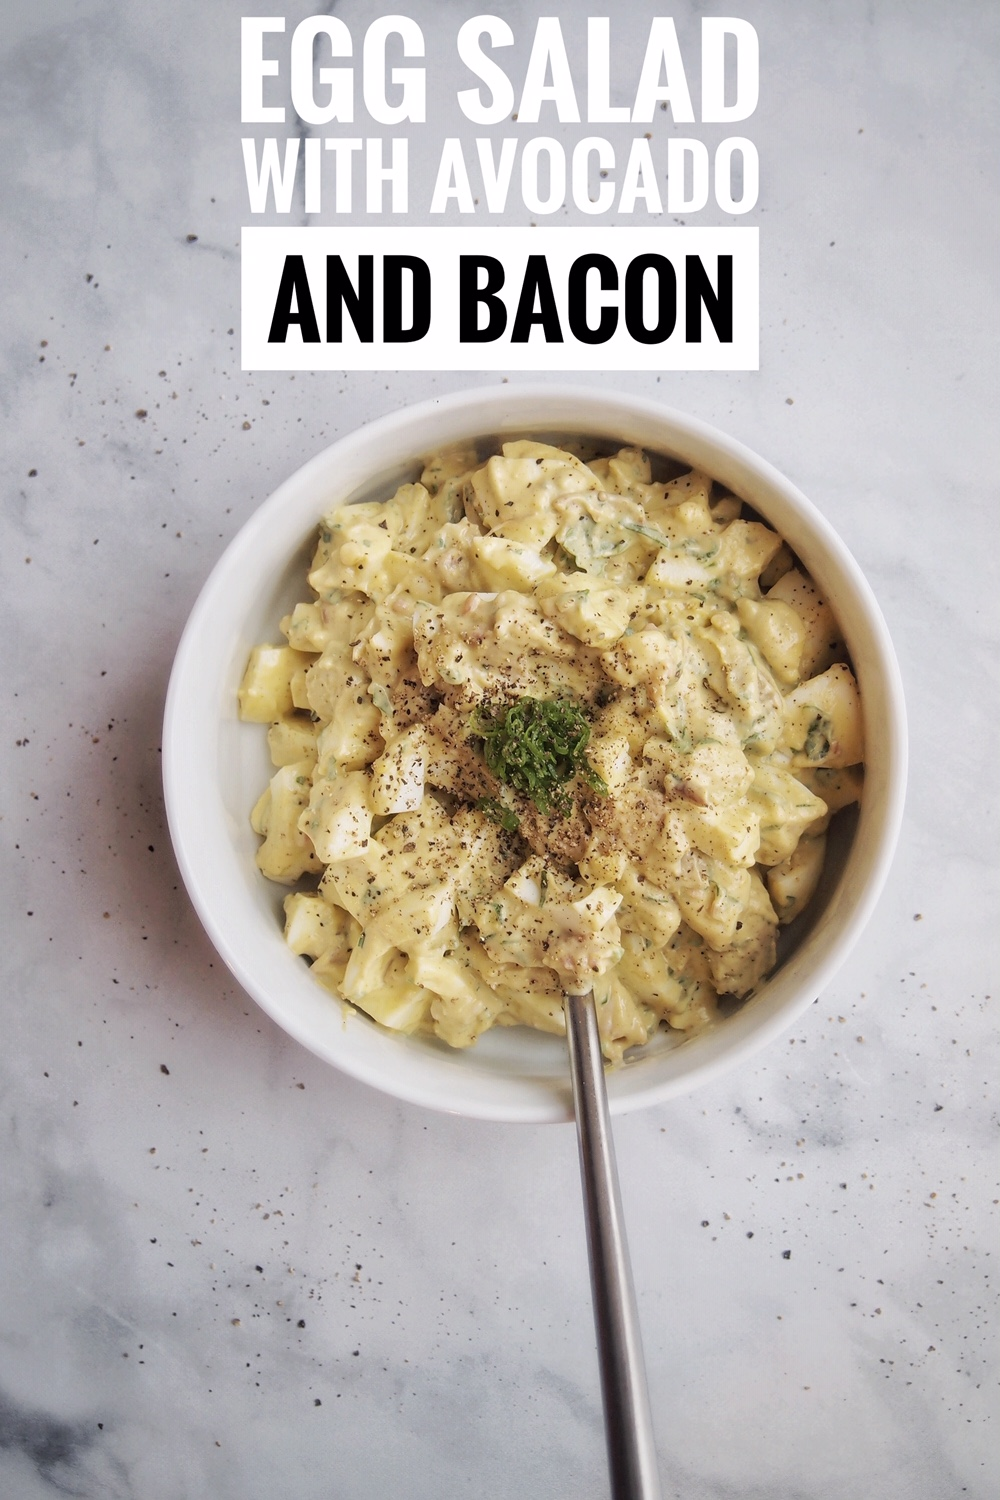 Keto Egg Salad with Avocado and bacon recipe